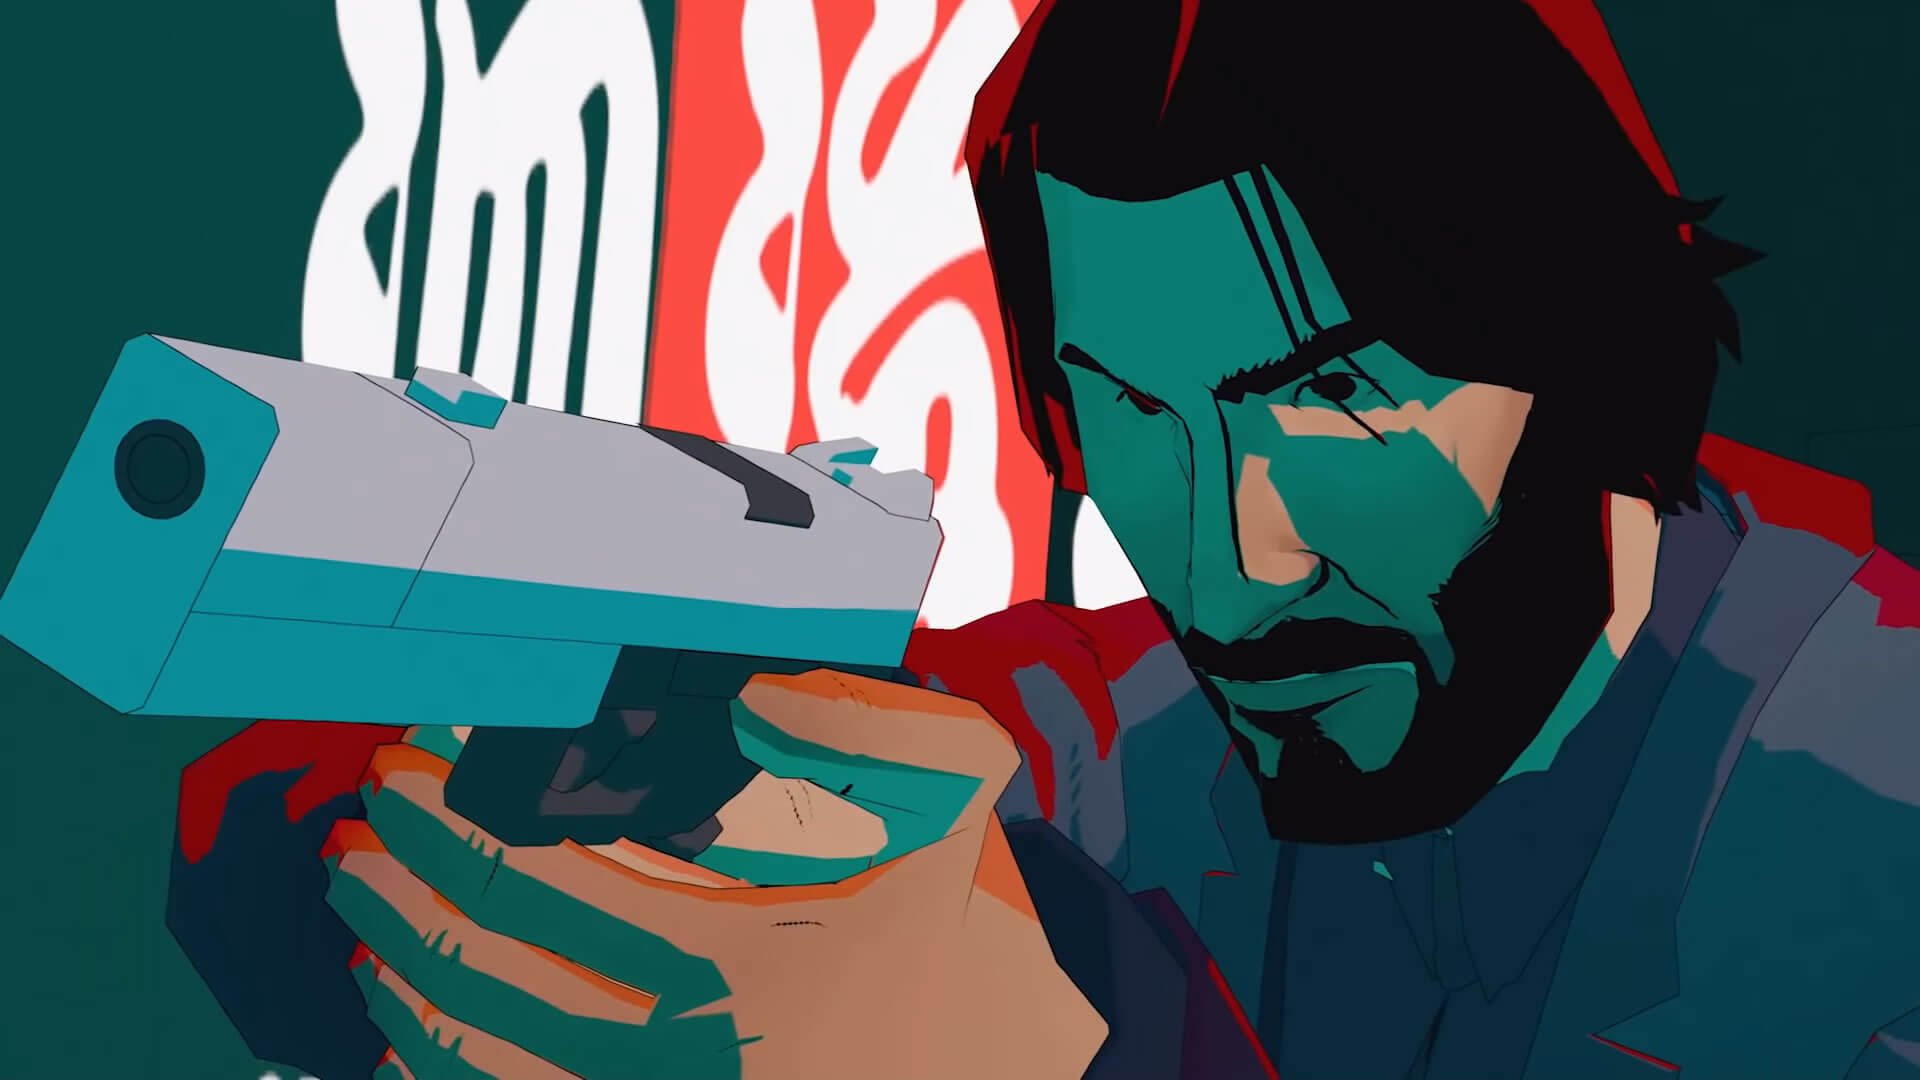 John Wick strategy game launches May 17th on PC